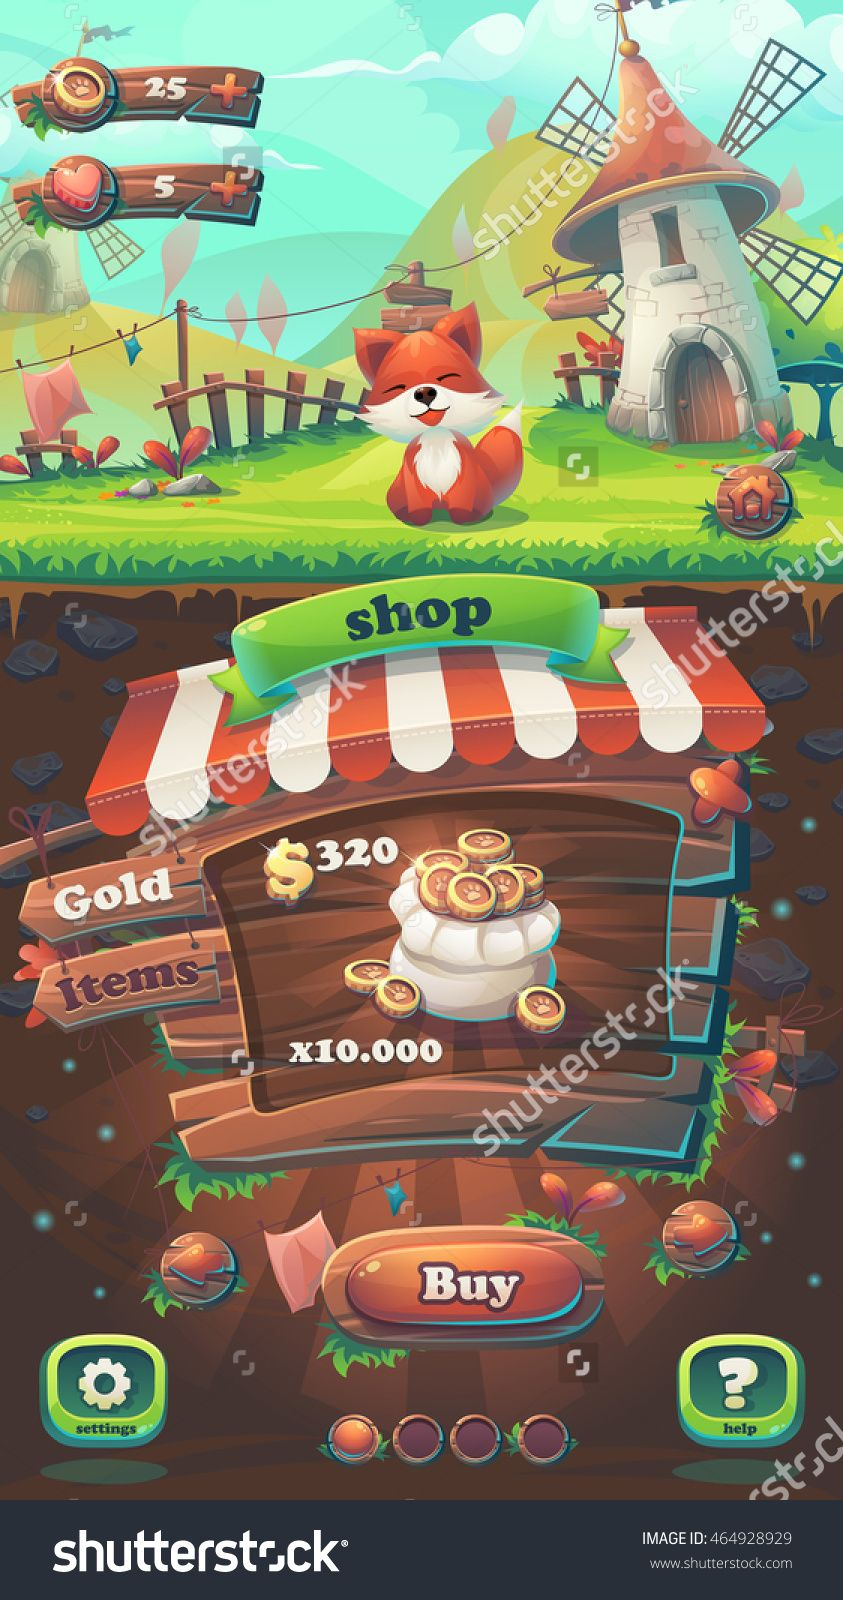 Feed The Fox Gui Match 3 Shop Window - Cartoon Stylized